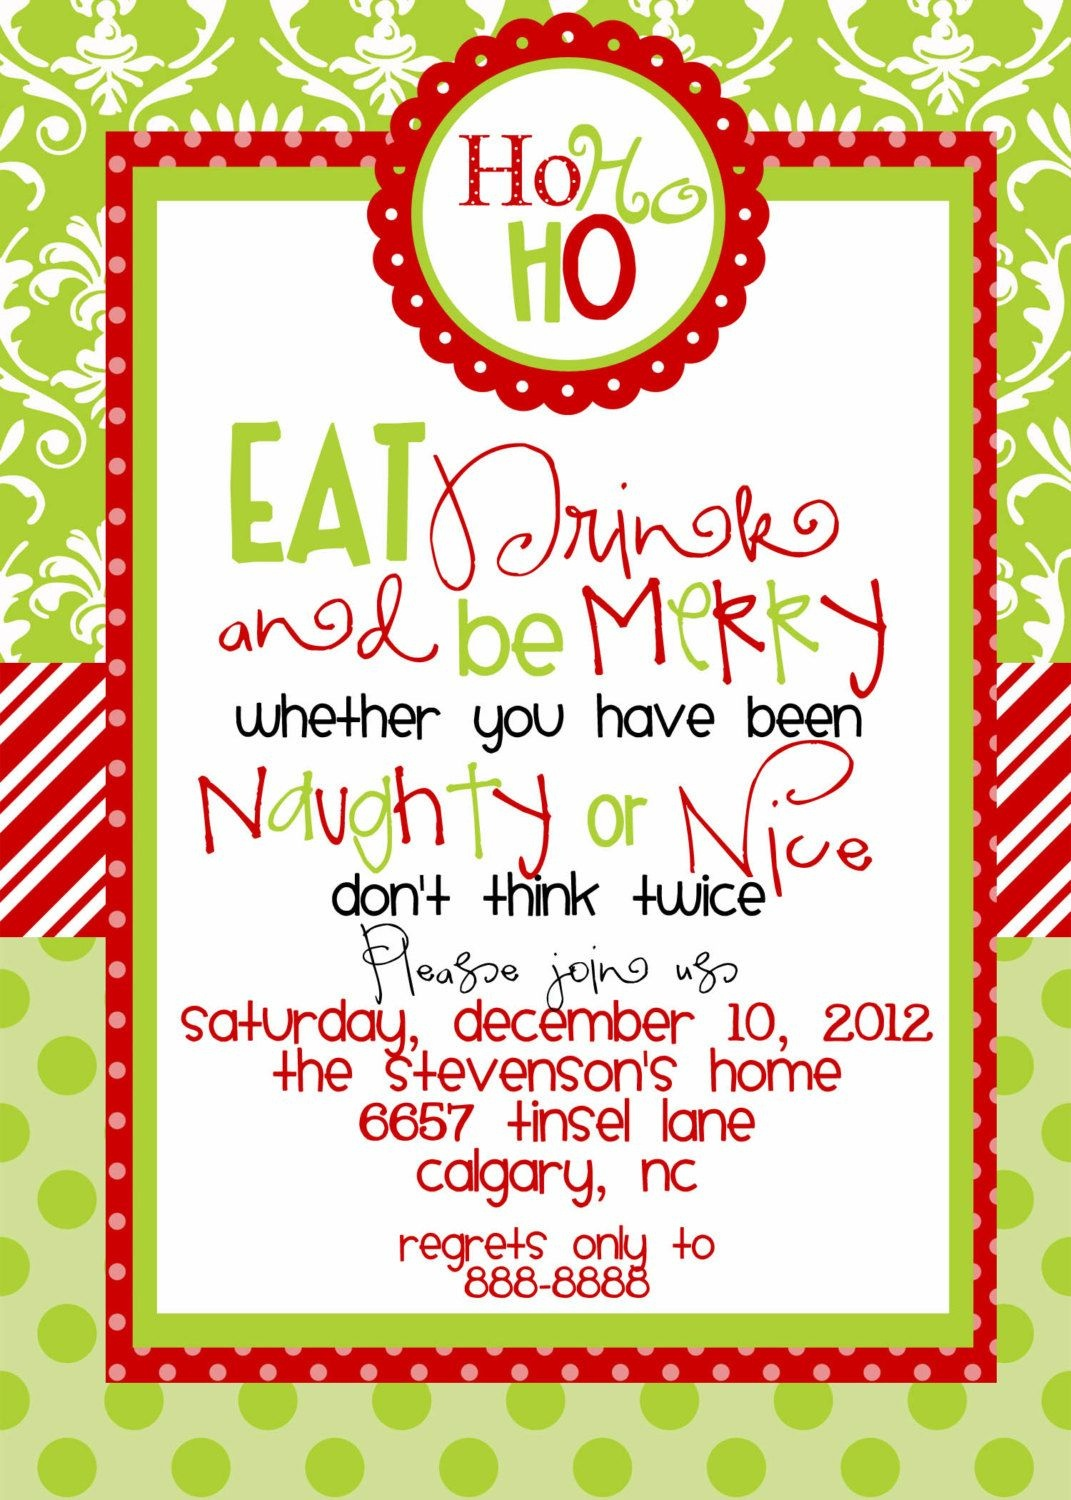 Custom Designed Christmas Party Invitations Eat Drink And Be Merry - Free Printable Christmas Party Flyer Templates